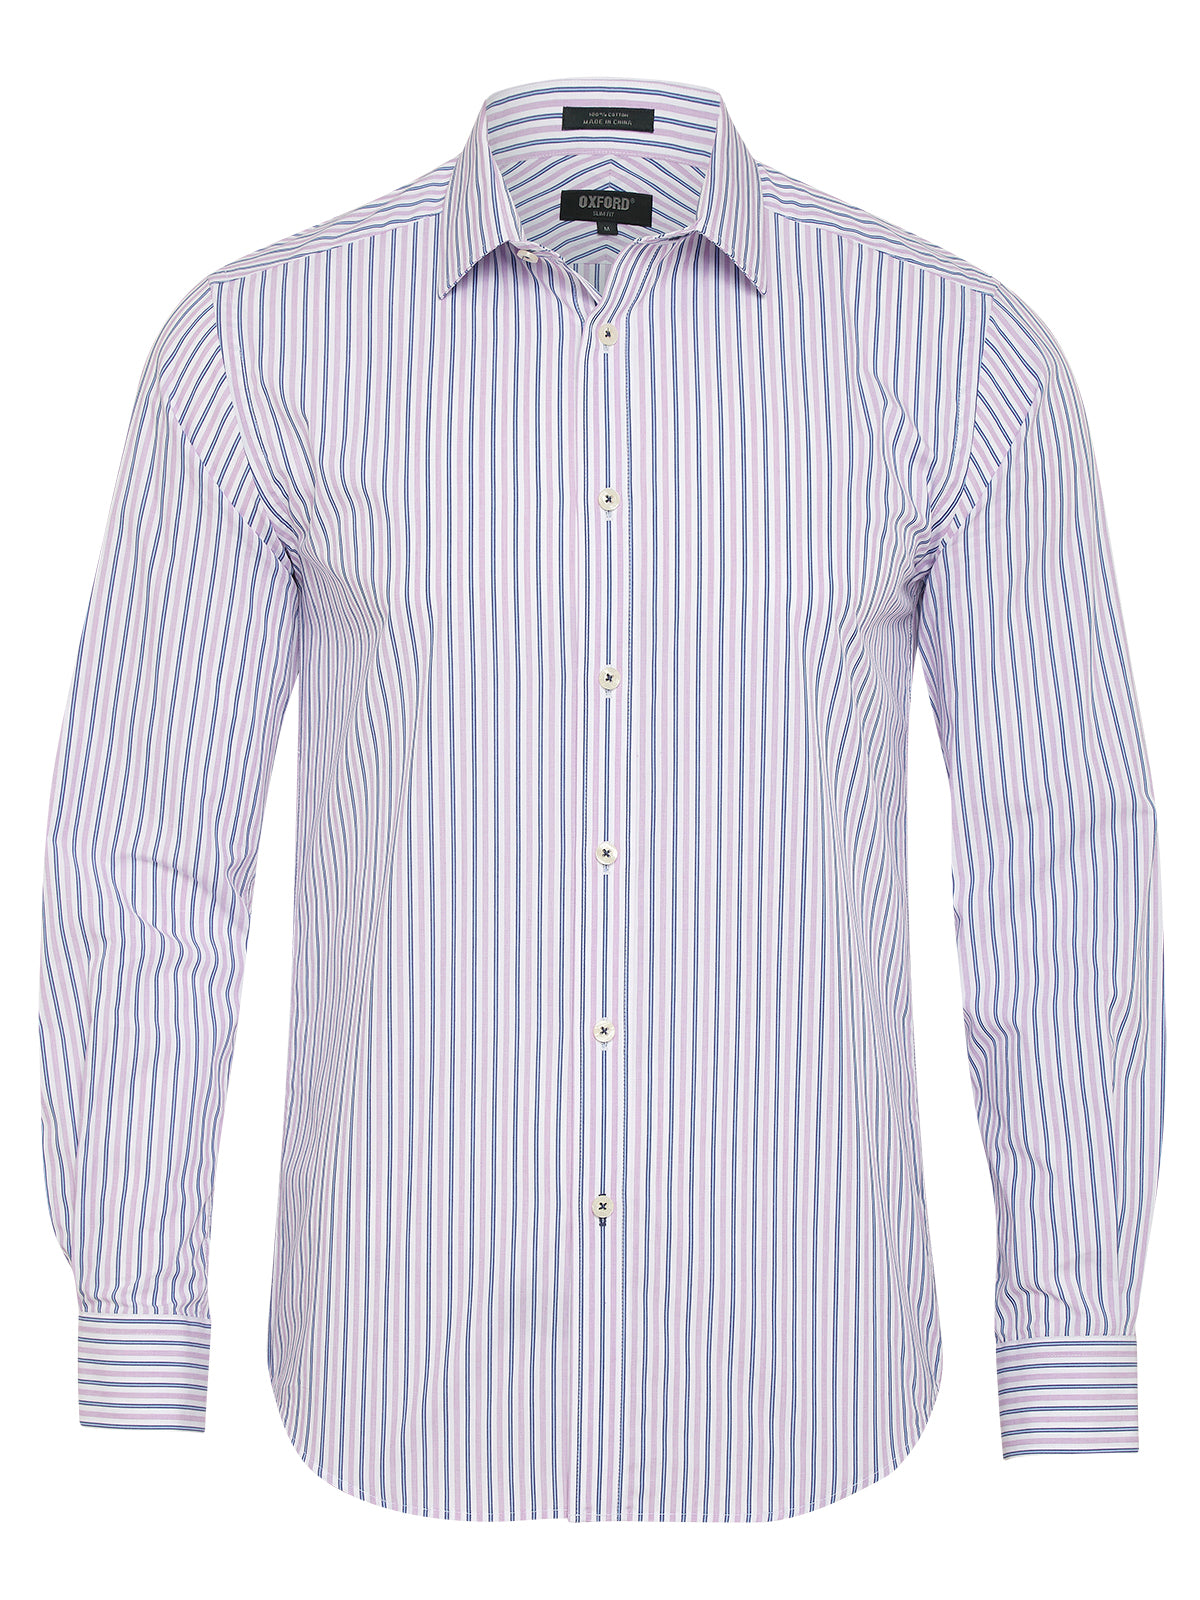 BECKTON STRIPE SHIRT PINK/NAVY